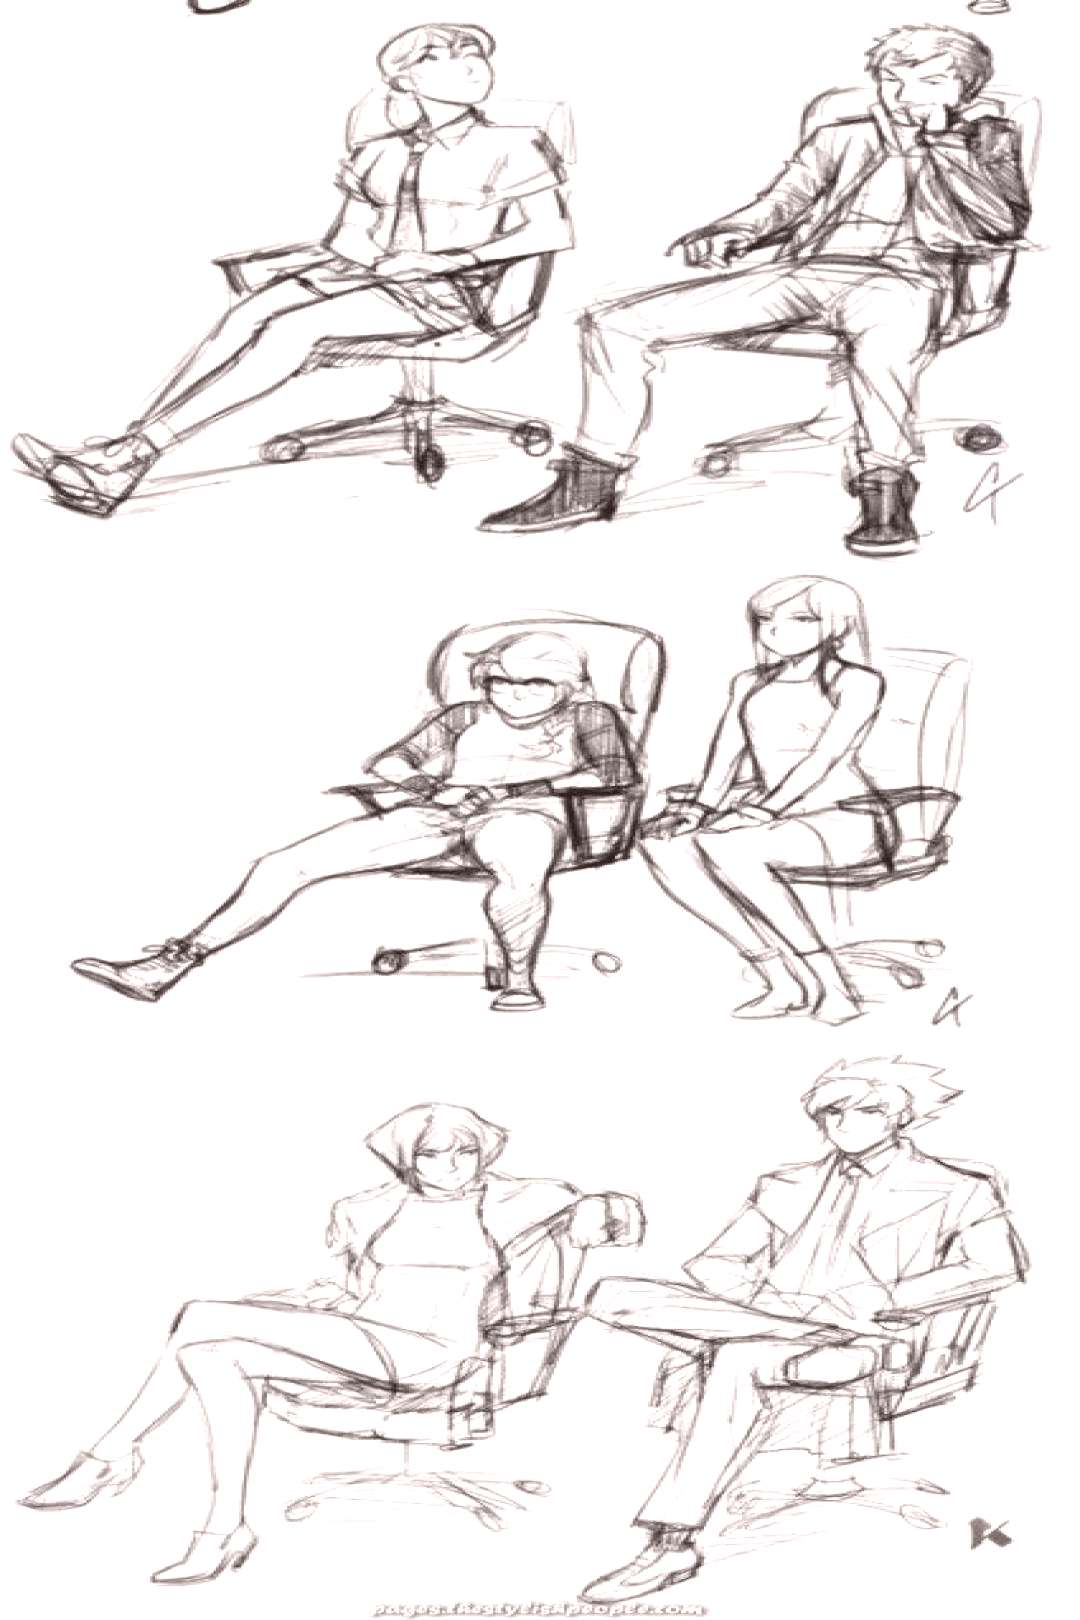 Great Drawing Concepts Suggests Anime characters for 2019 Great Drawing Concepts Suggests Anime cha